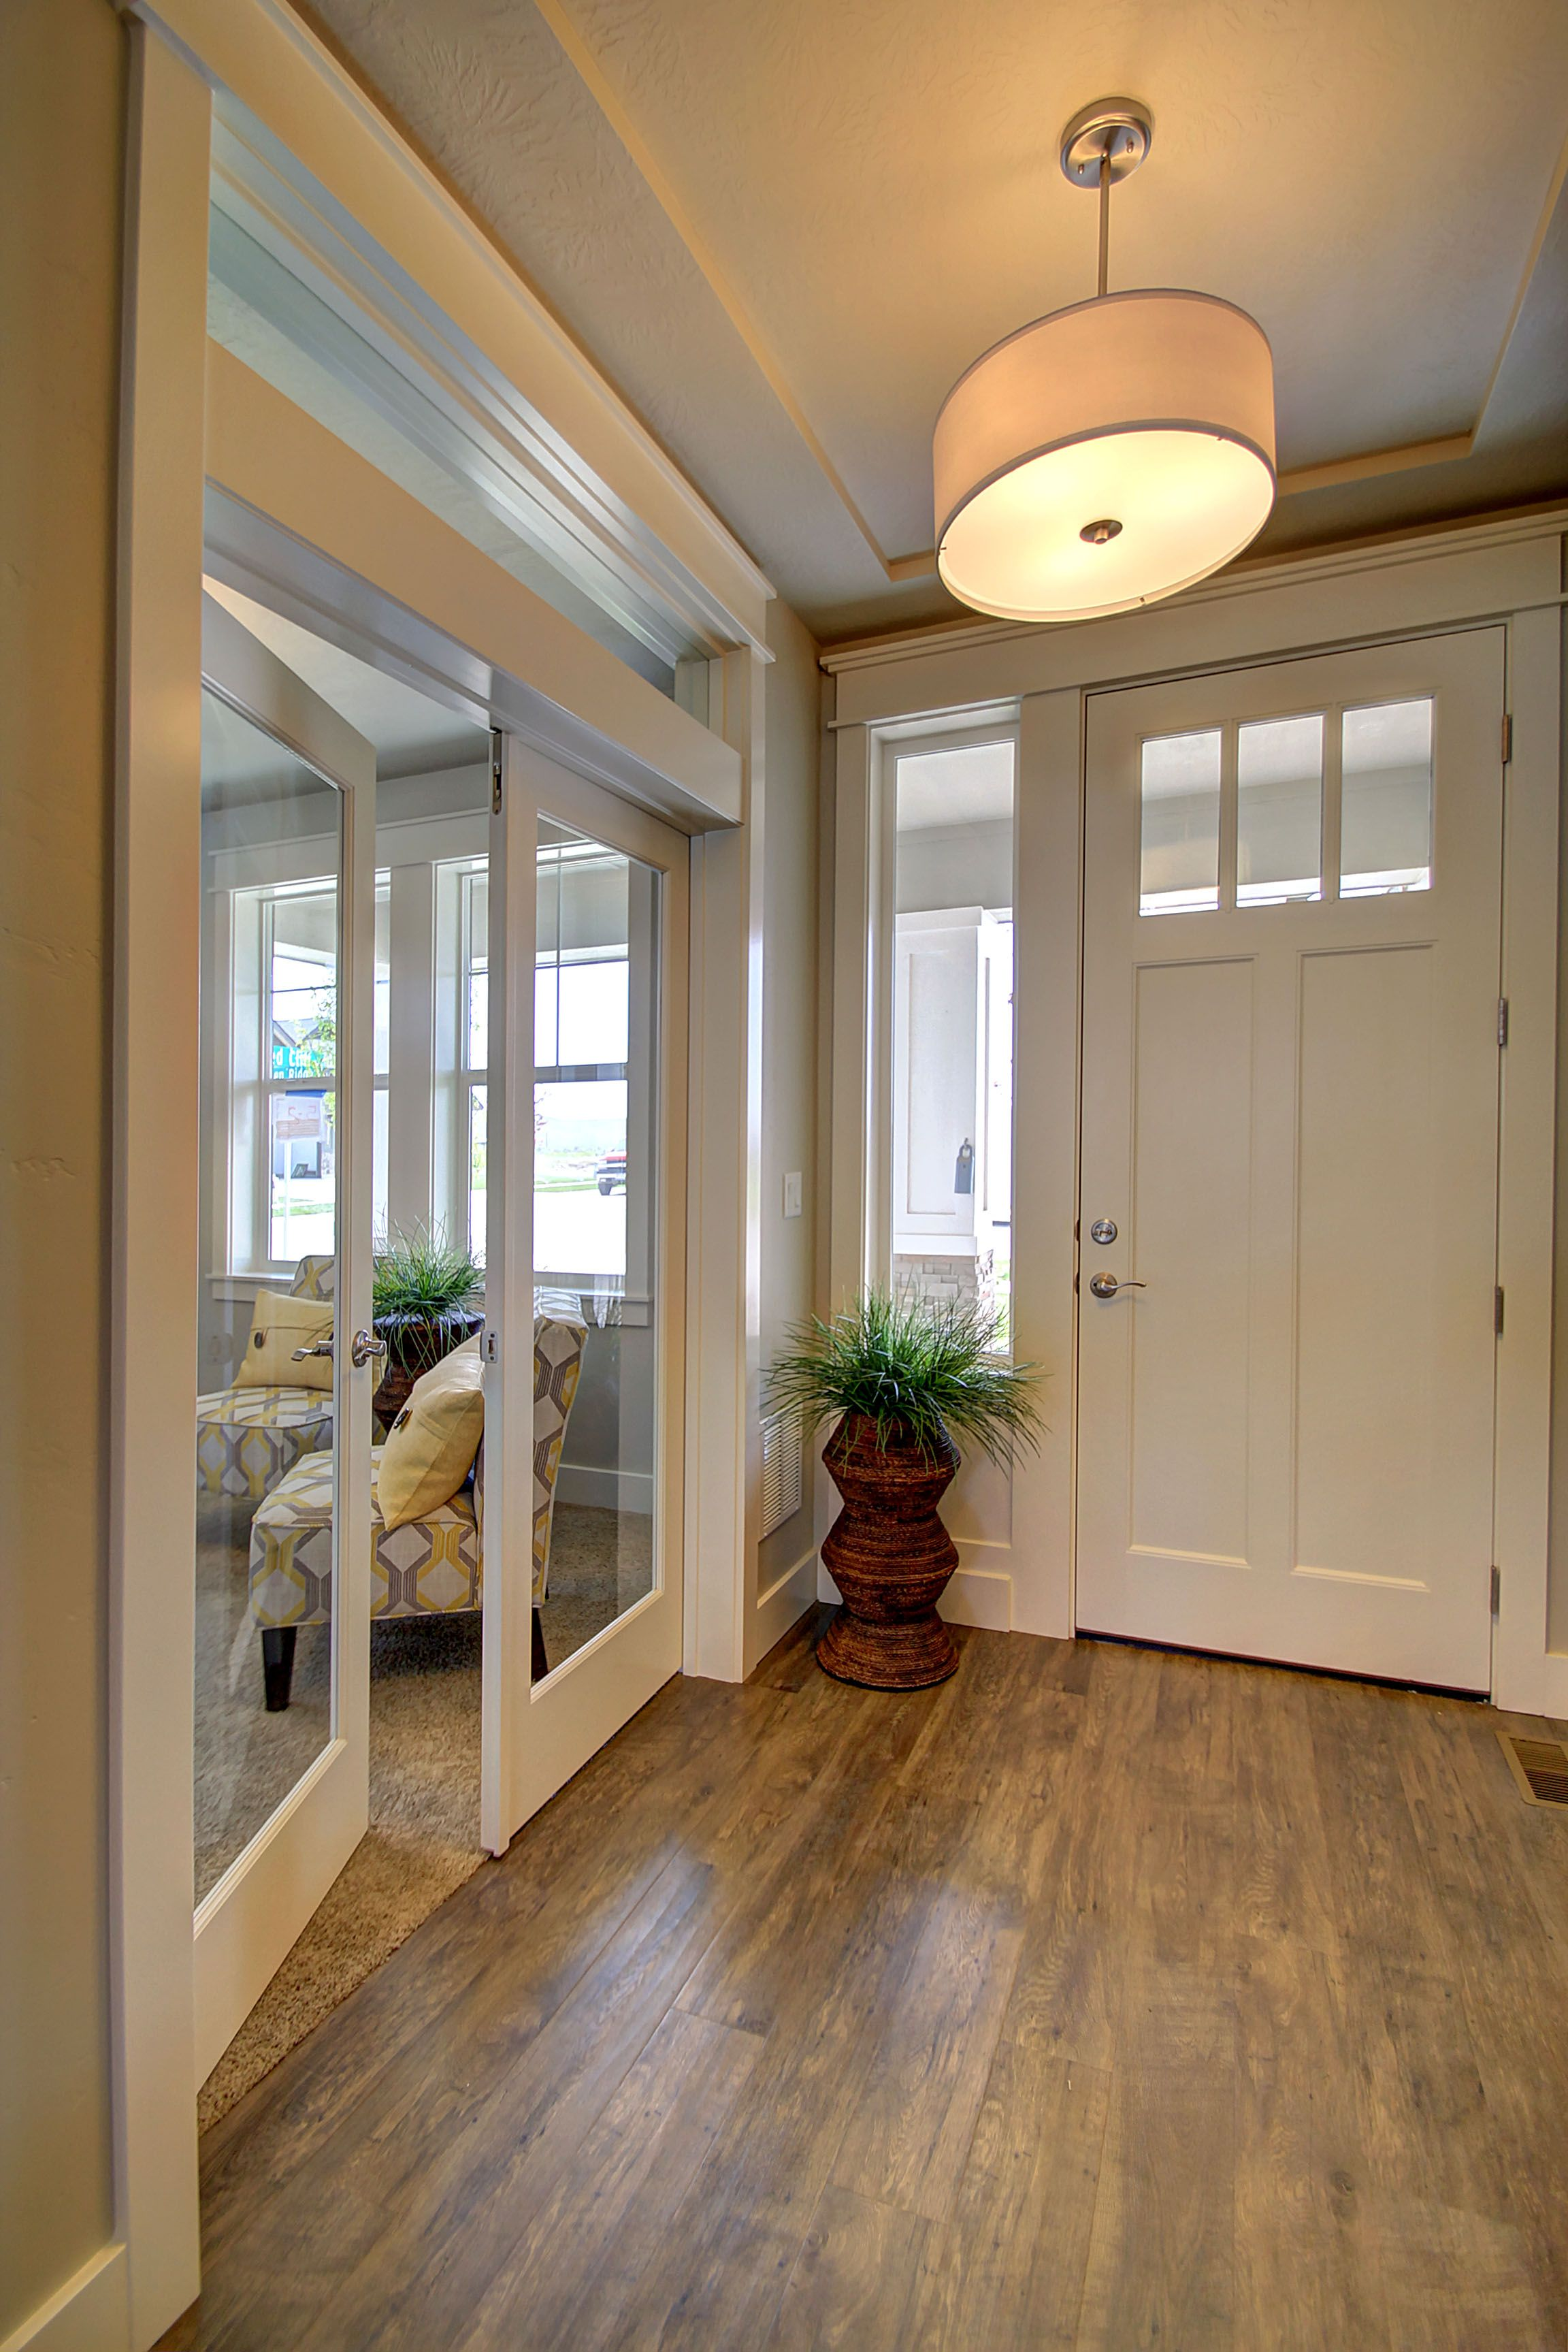 office french doors. Our Entry - Craftsman Door, Office French Doors With Transom Window Above (need A Cool Light Fixture For This Entry....) 2